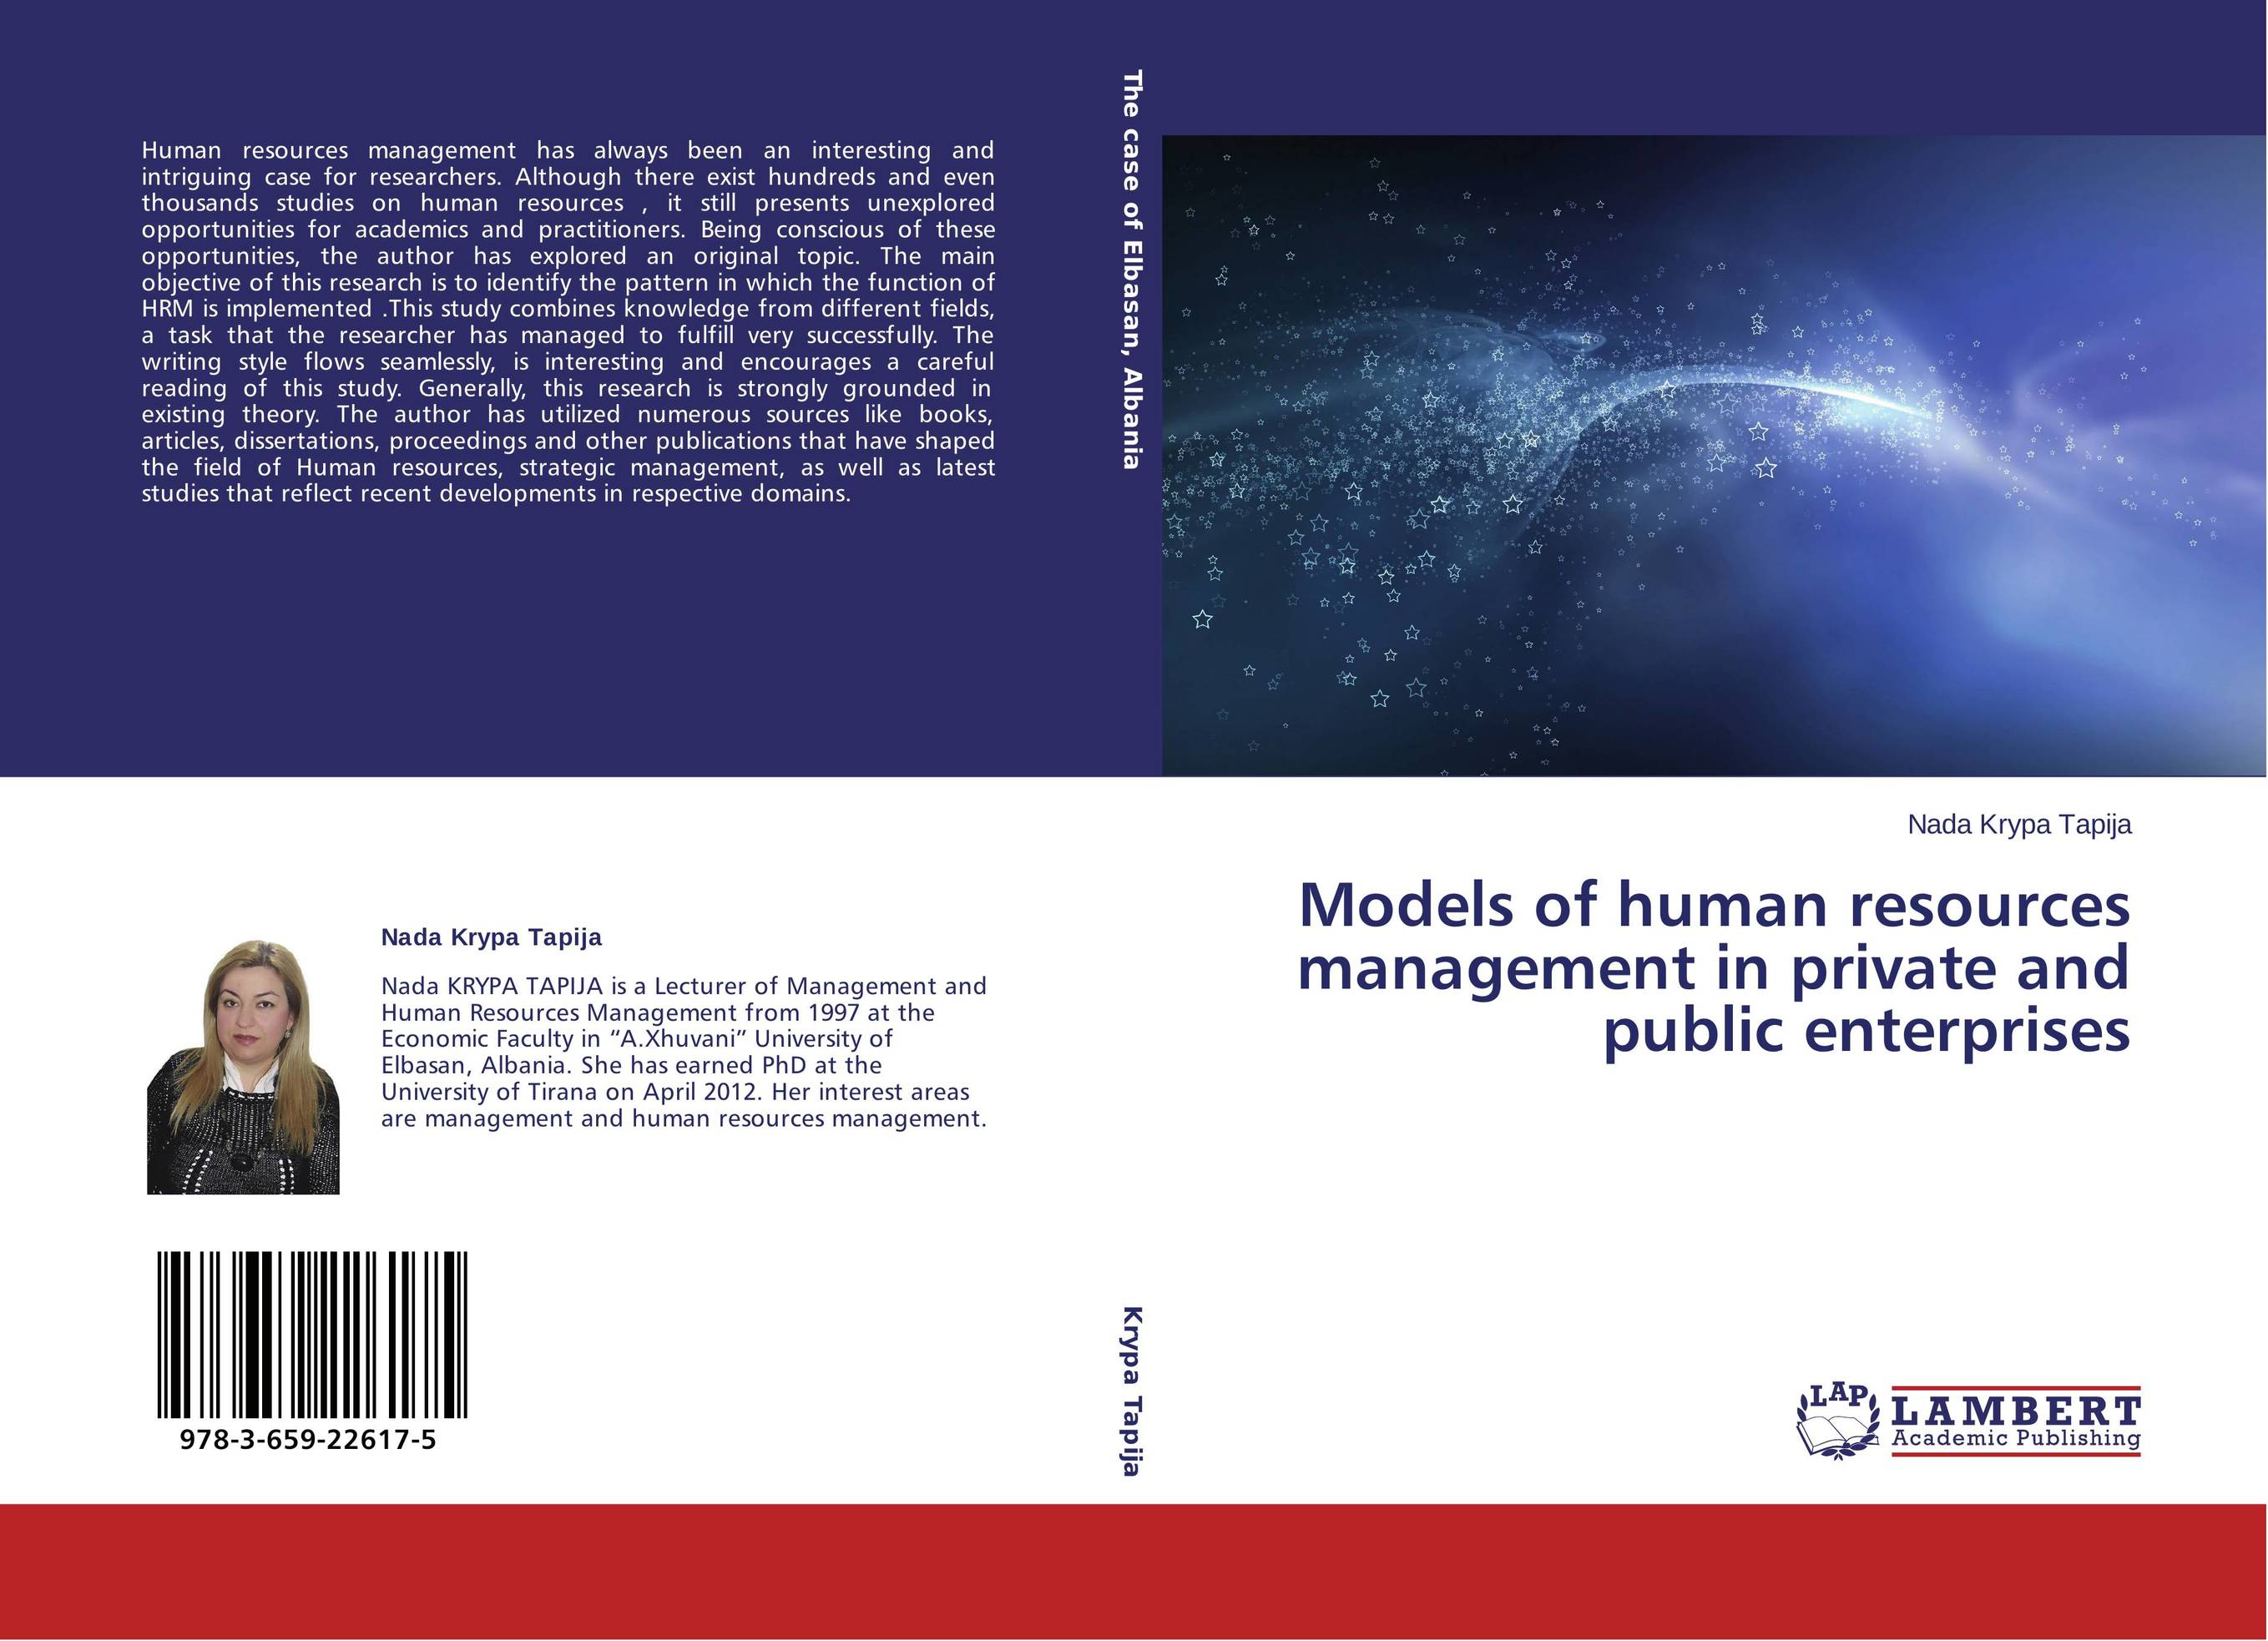 case study in human resources management The objective of this book is to present a compilation of human resource management case studies highlighting some of the contemporary issues and practices in the major processes of human resource function.